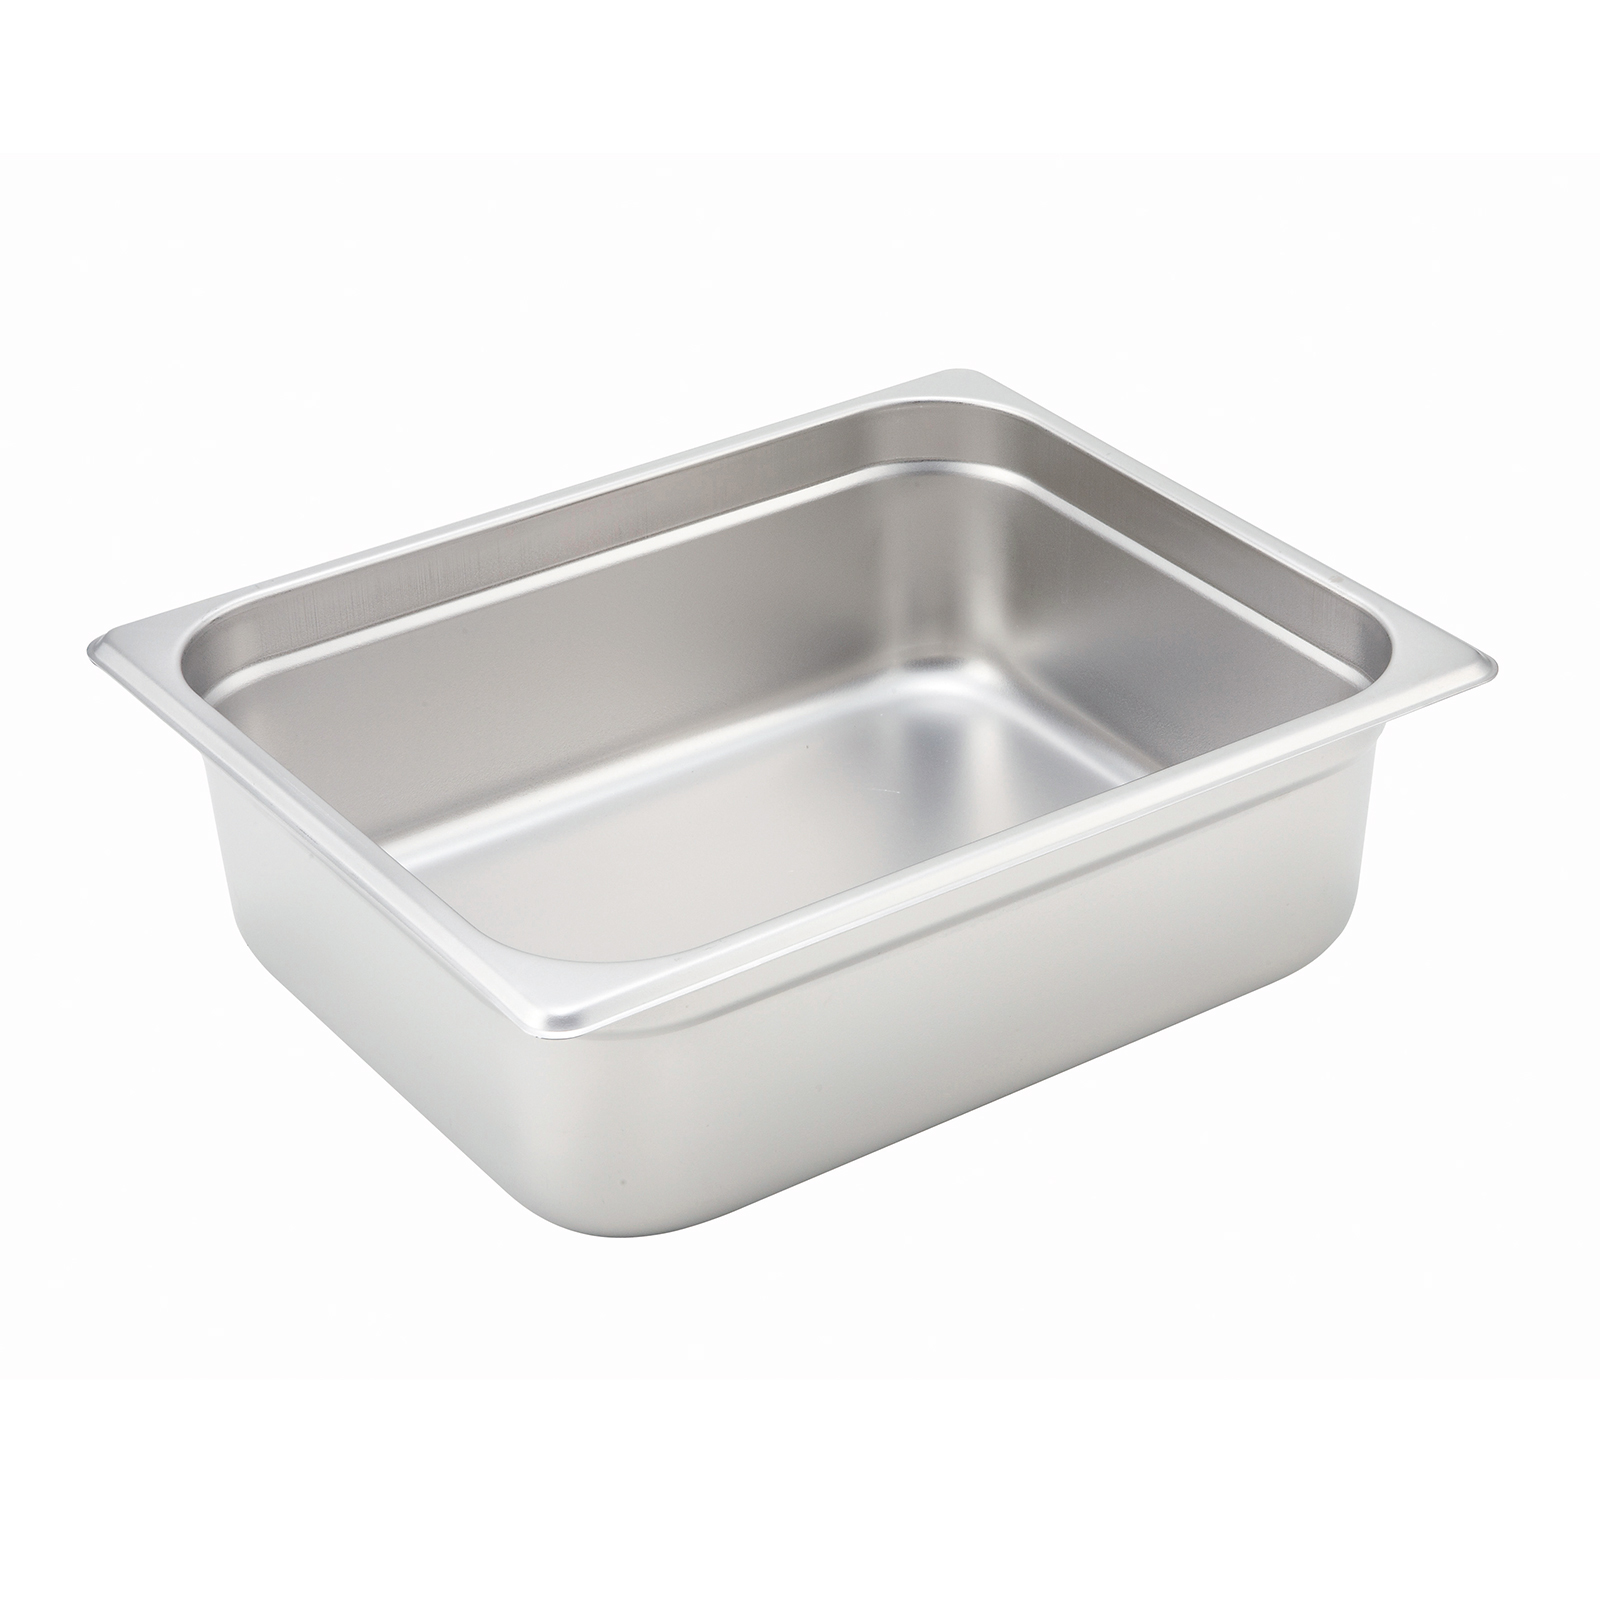 Winco SPJH-204 steam table pan, stainless steel